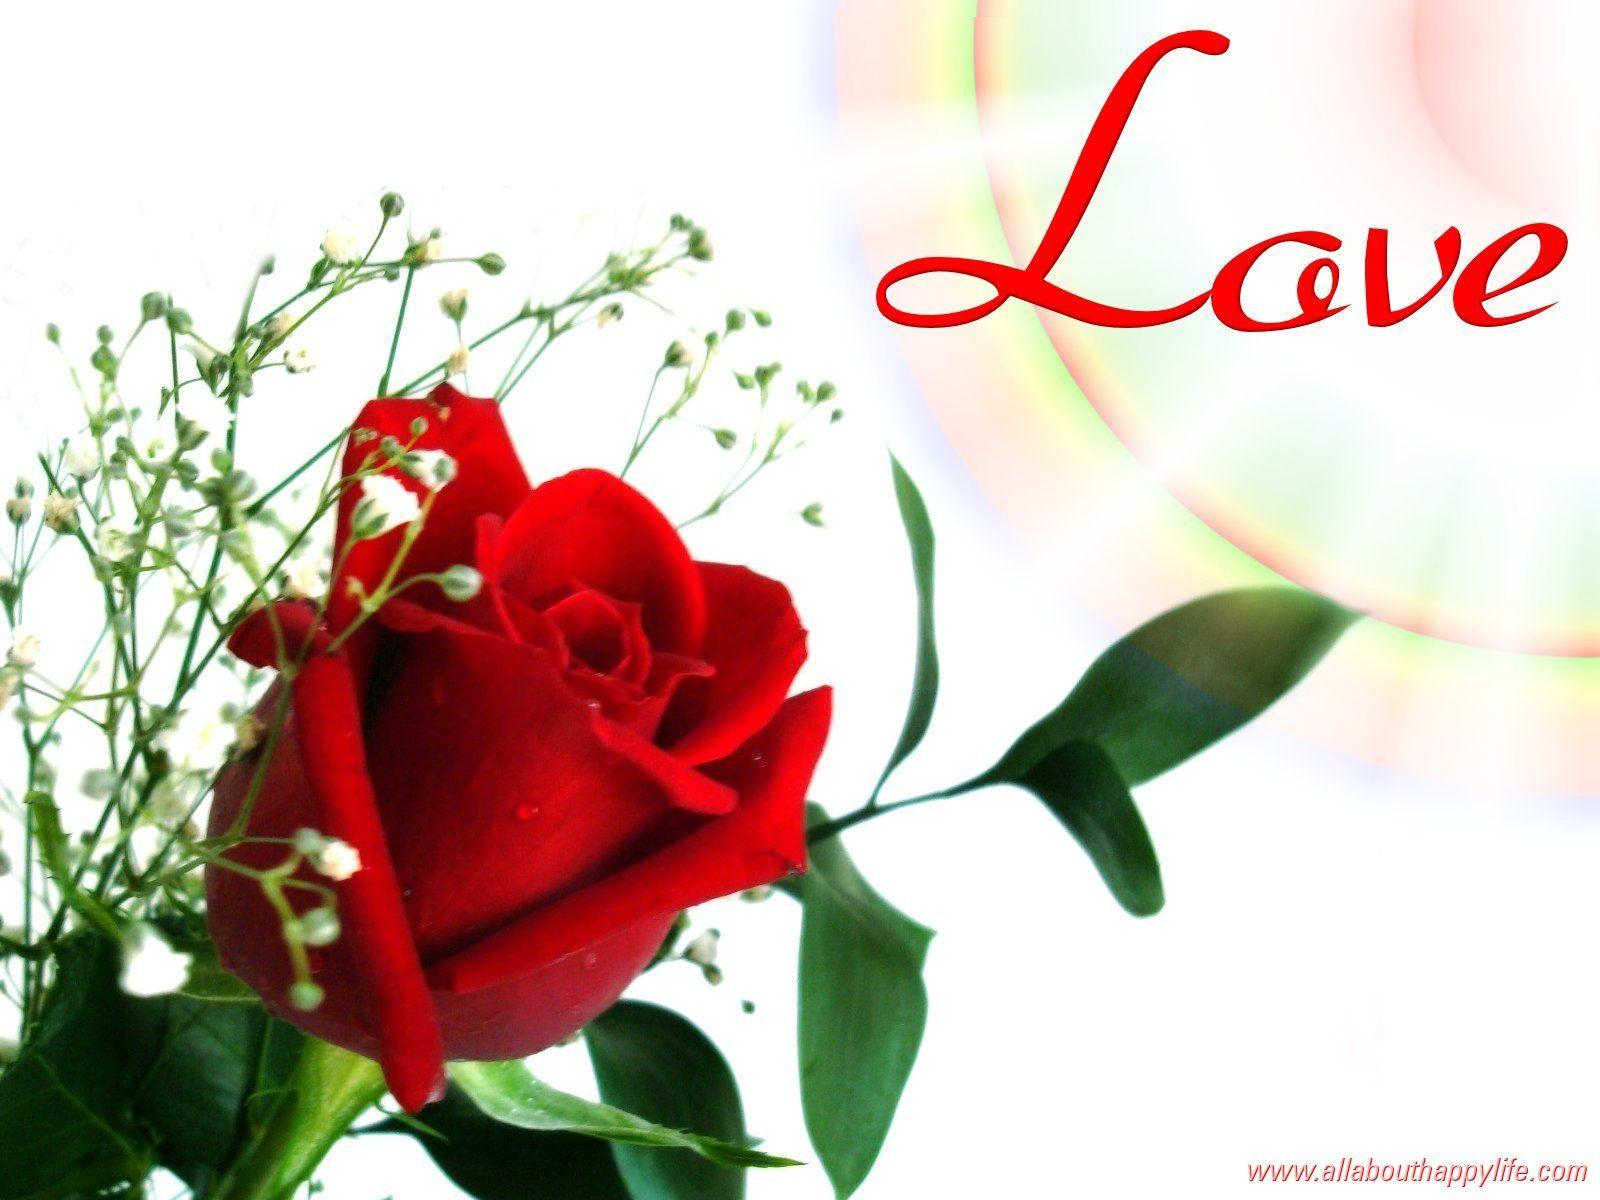 Wallpaper download in love - Red Flower Wallpaper Love 1 2leephd